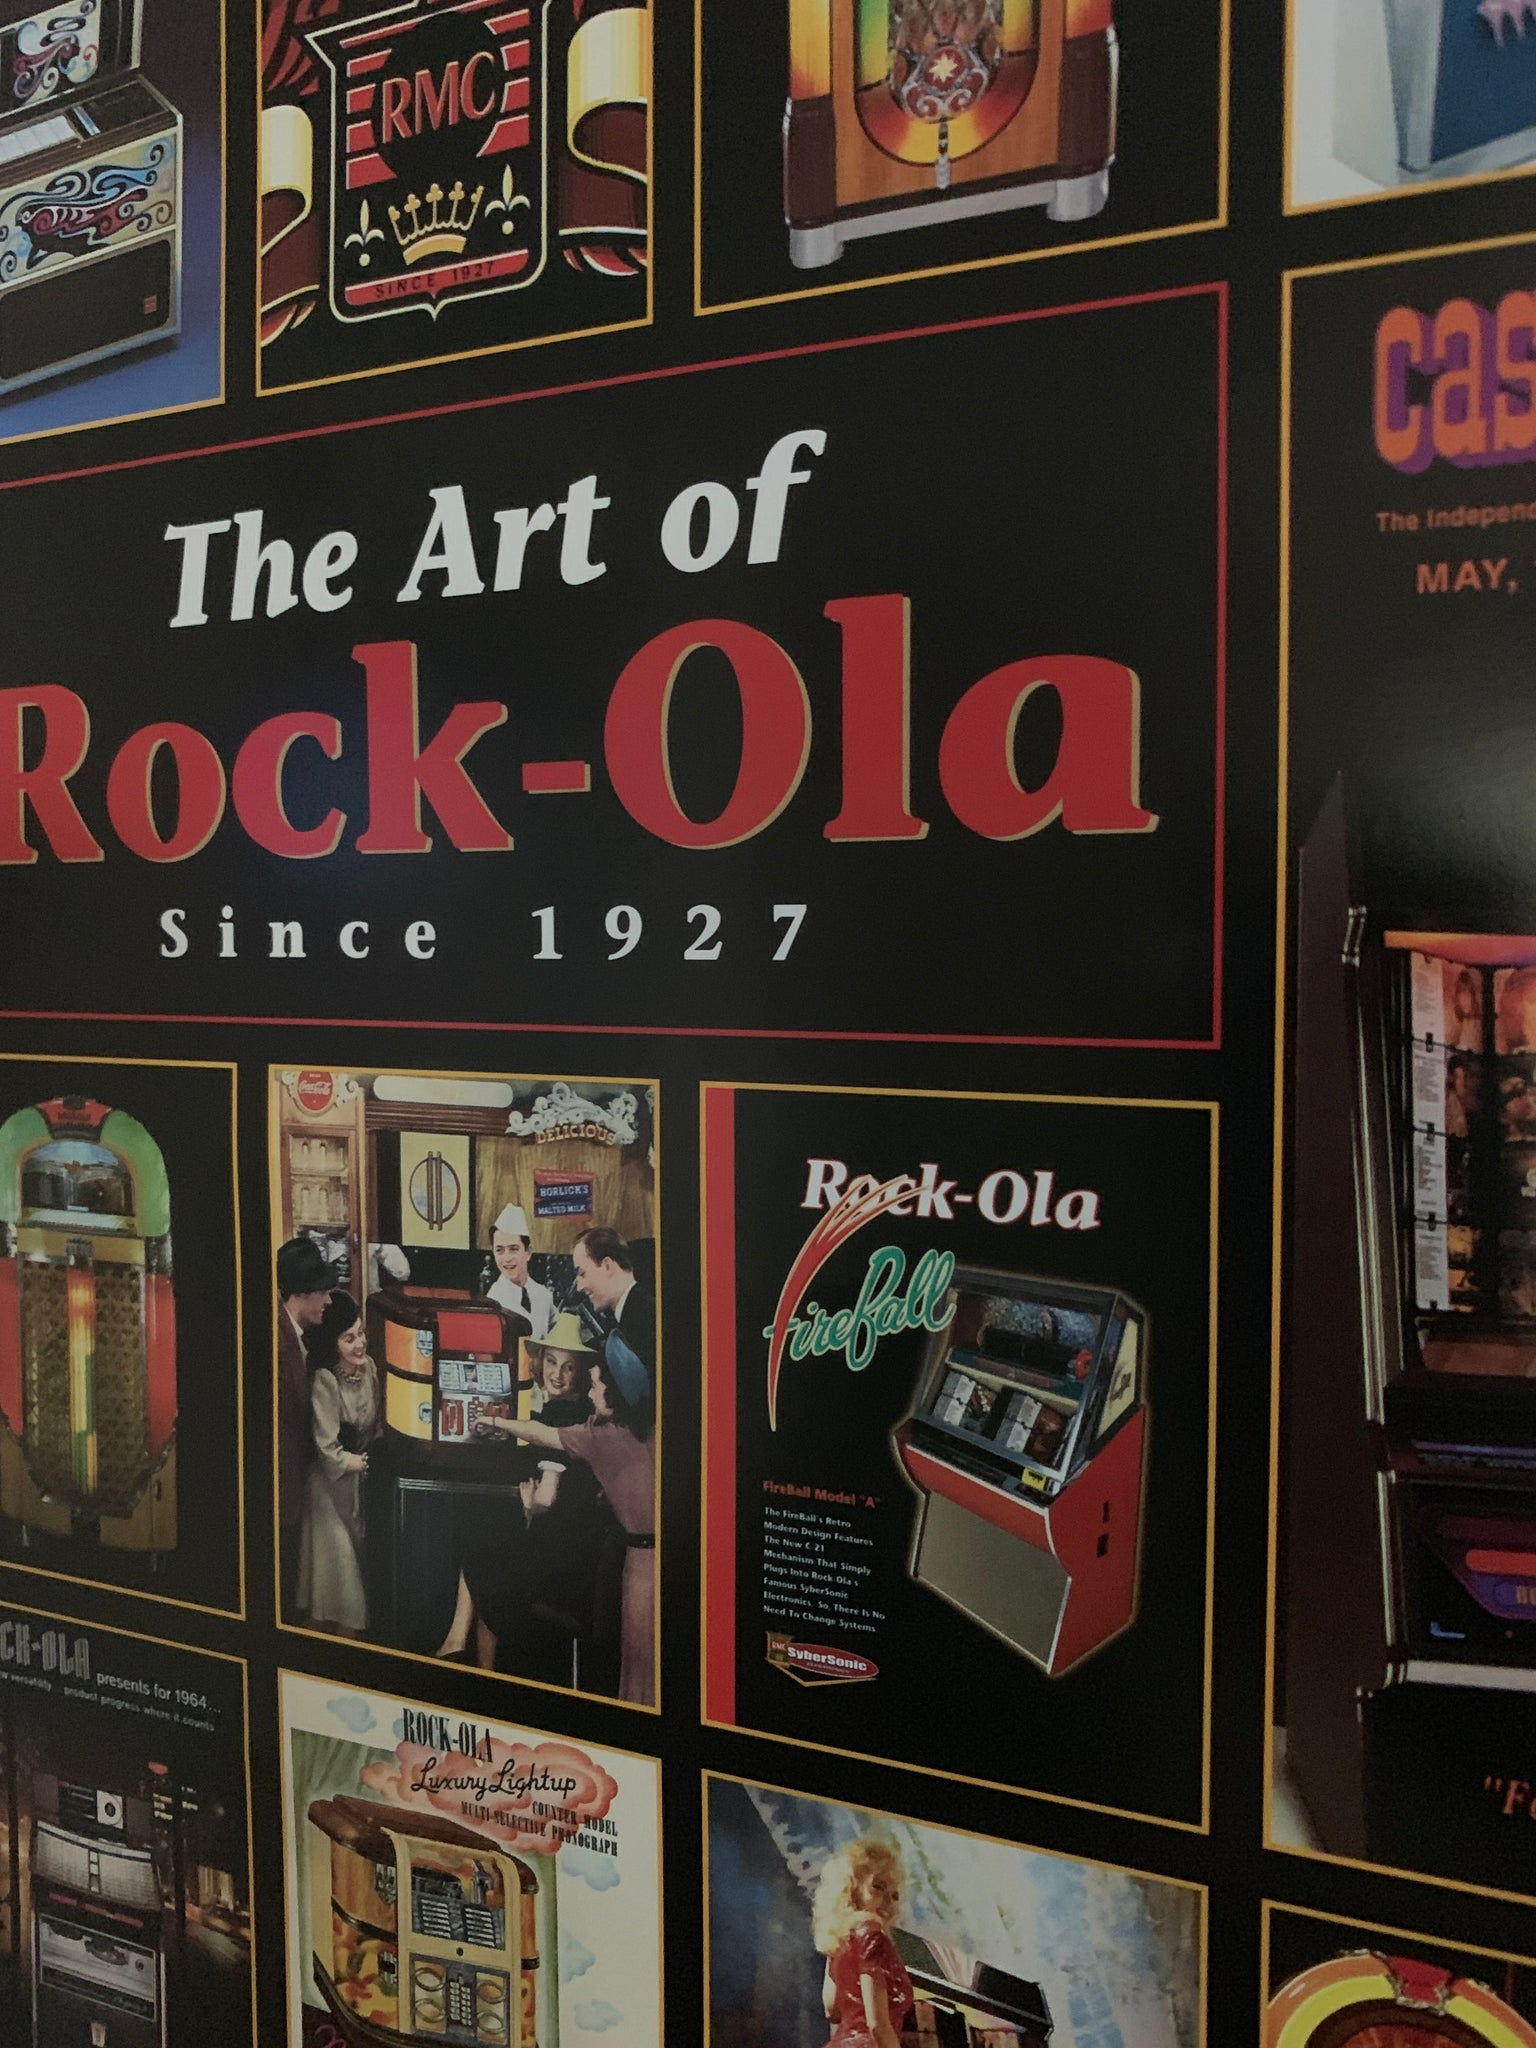 Art of Rock-Ola Poster